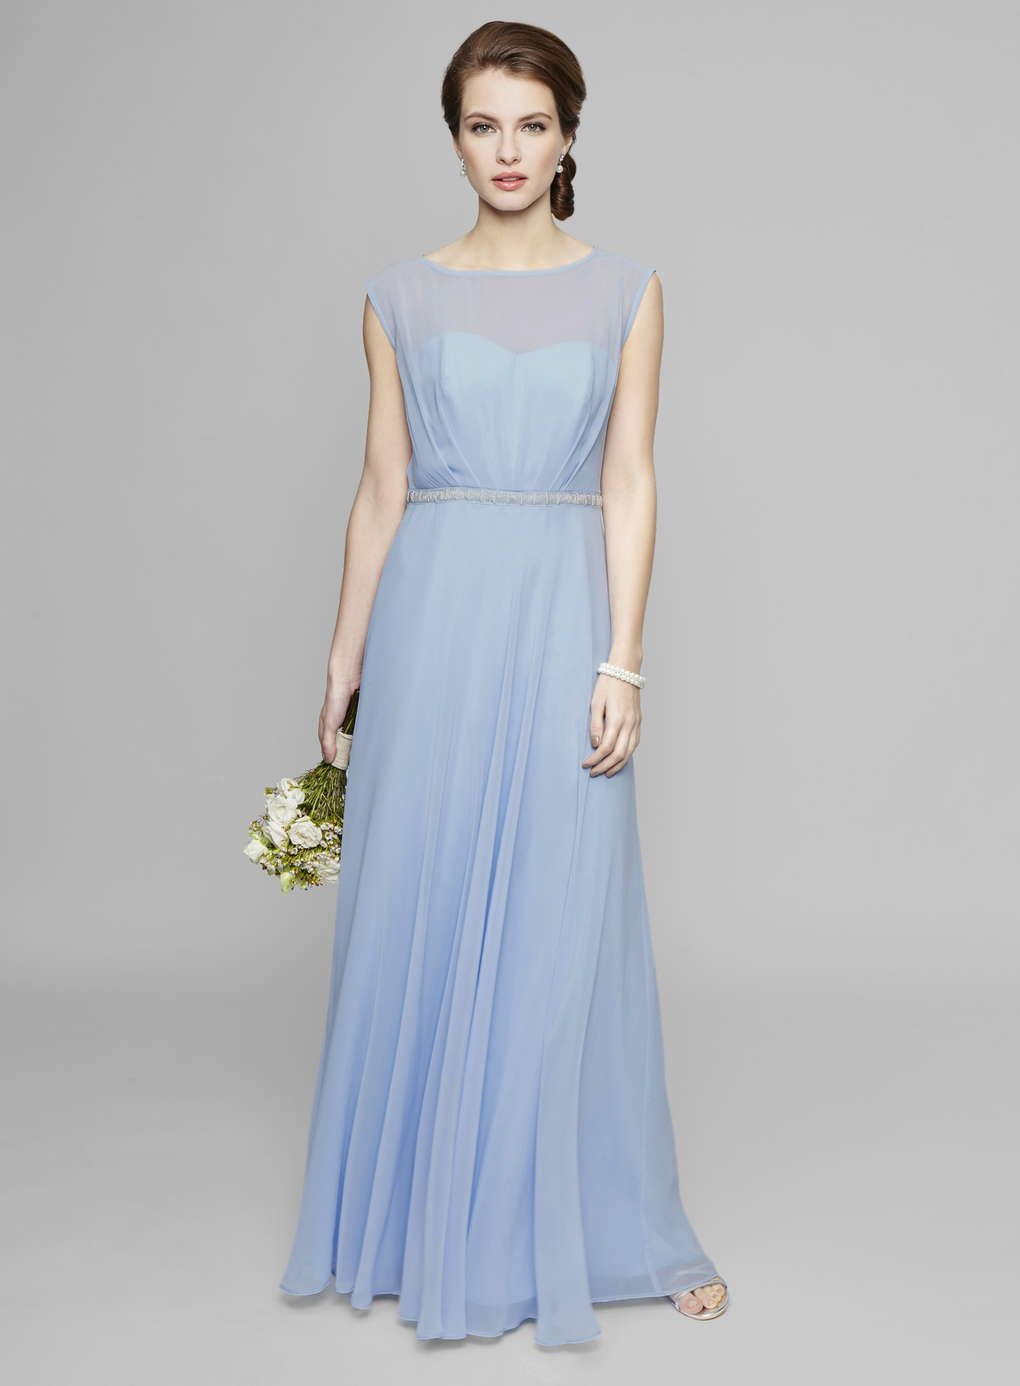 Pale Blue Bridesmaid Dresses | Good Dresses